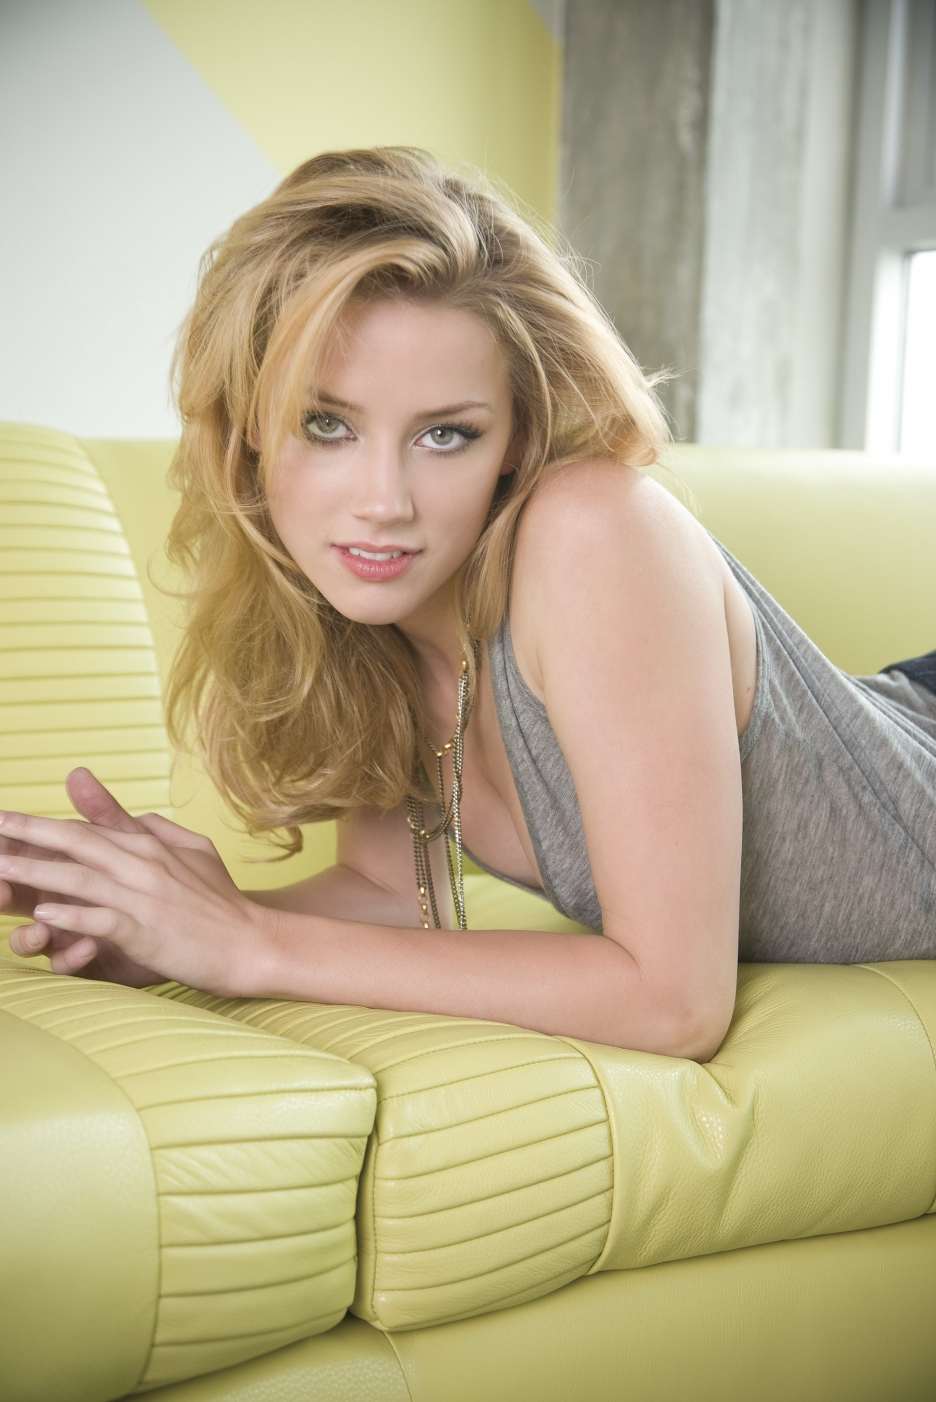 Amber Heard Is The Most Scientifically Beautiful Woman: Faces: Amber Heard